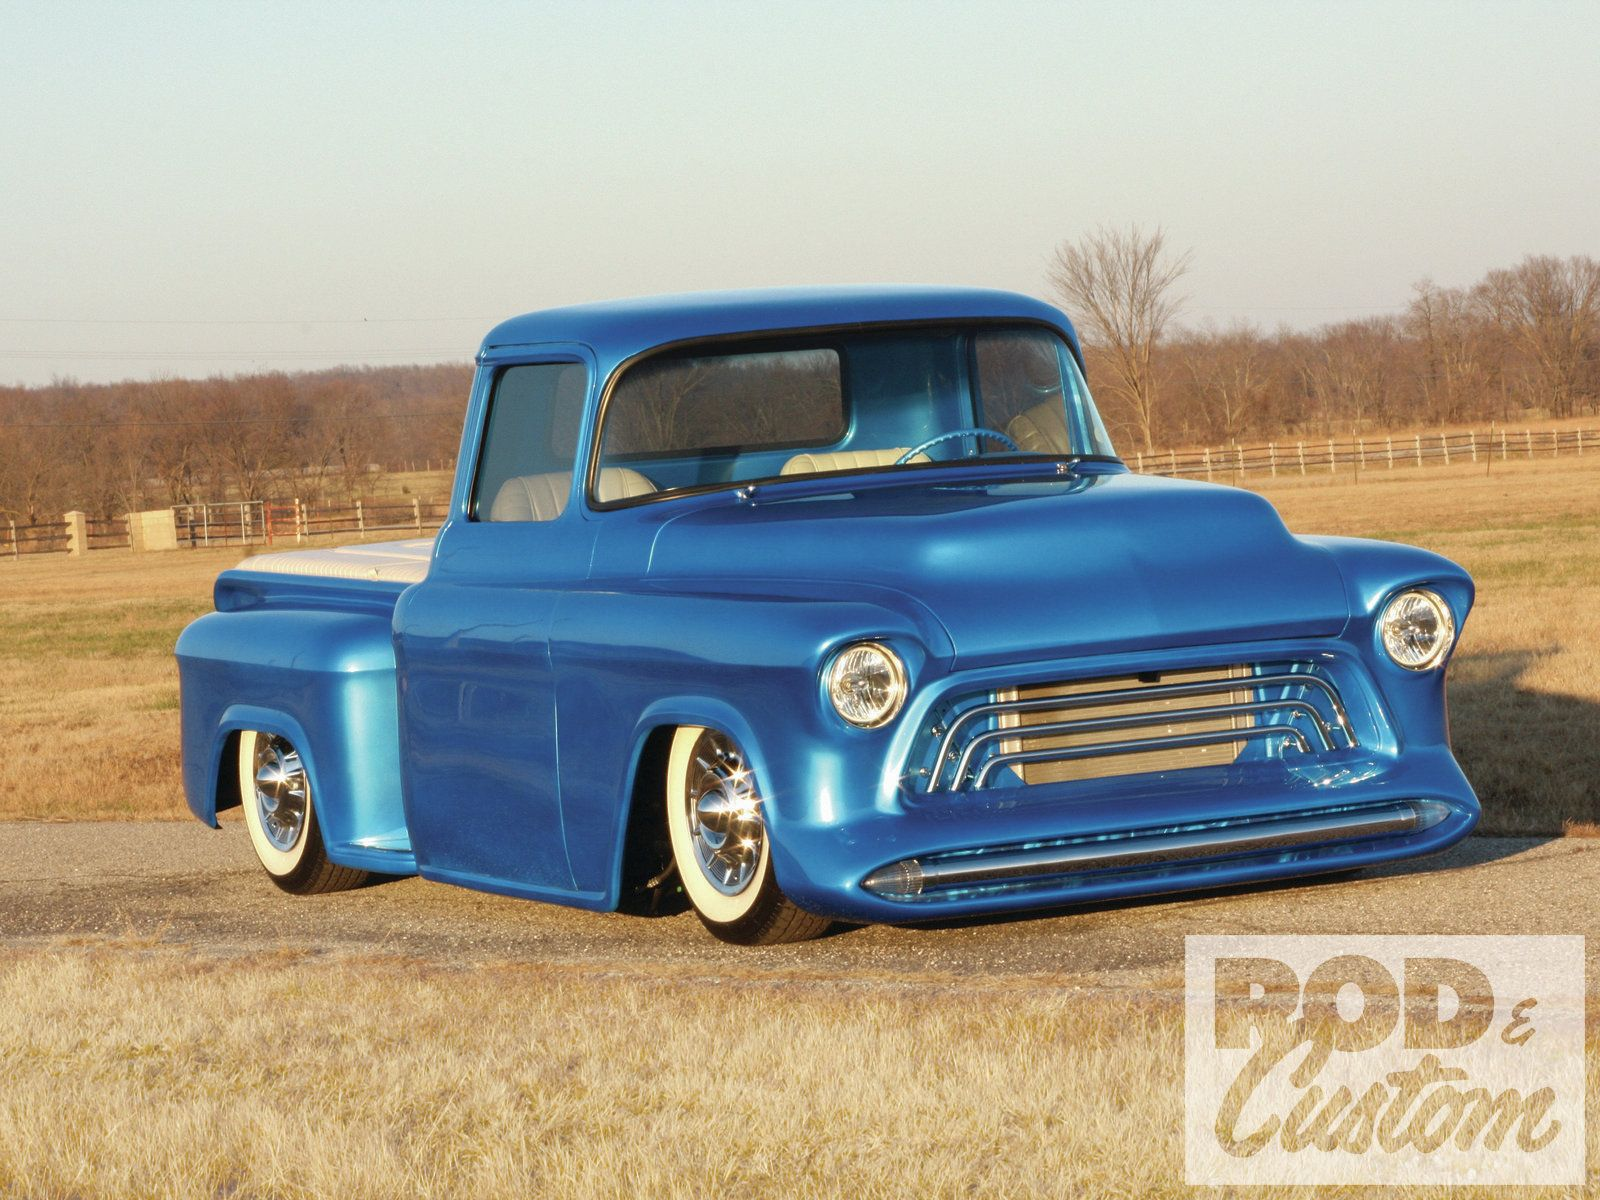 1955 chevrolet hot rod truck pictures to pin on pinterest - Find This Pin And More On Cars Trucks 55 Chevy